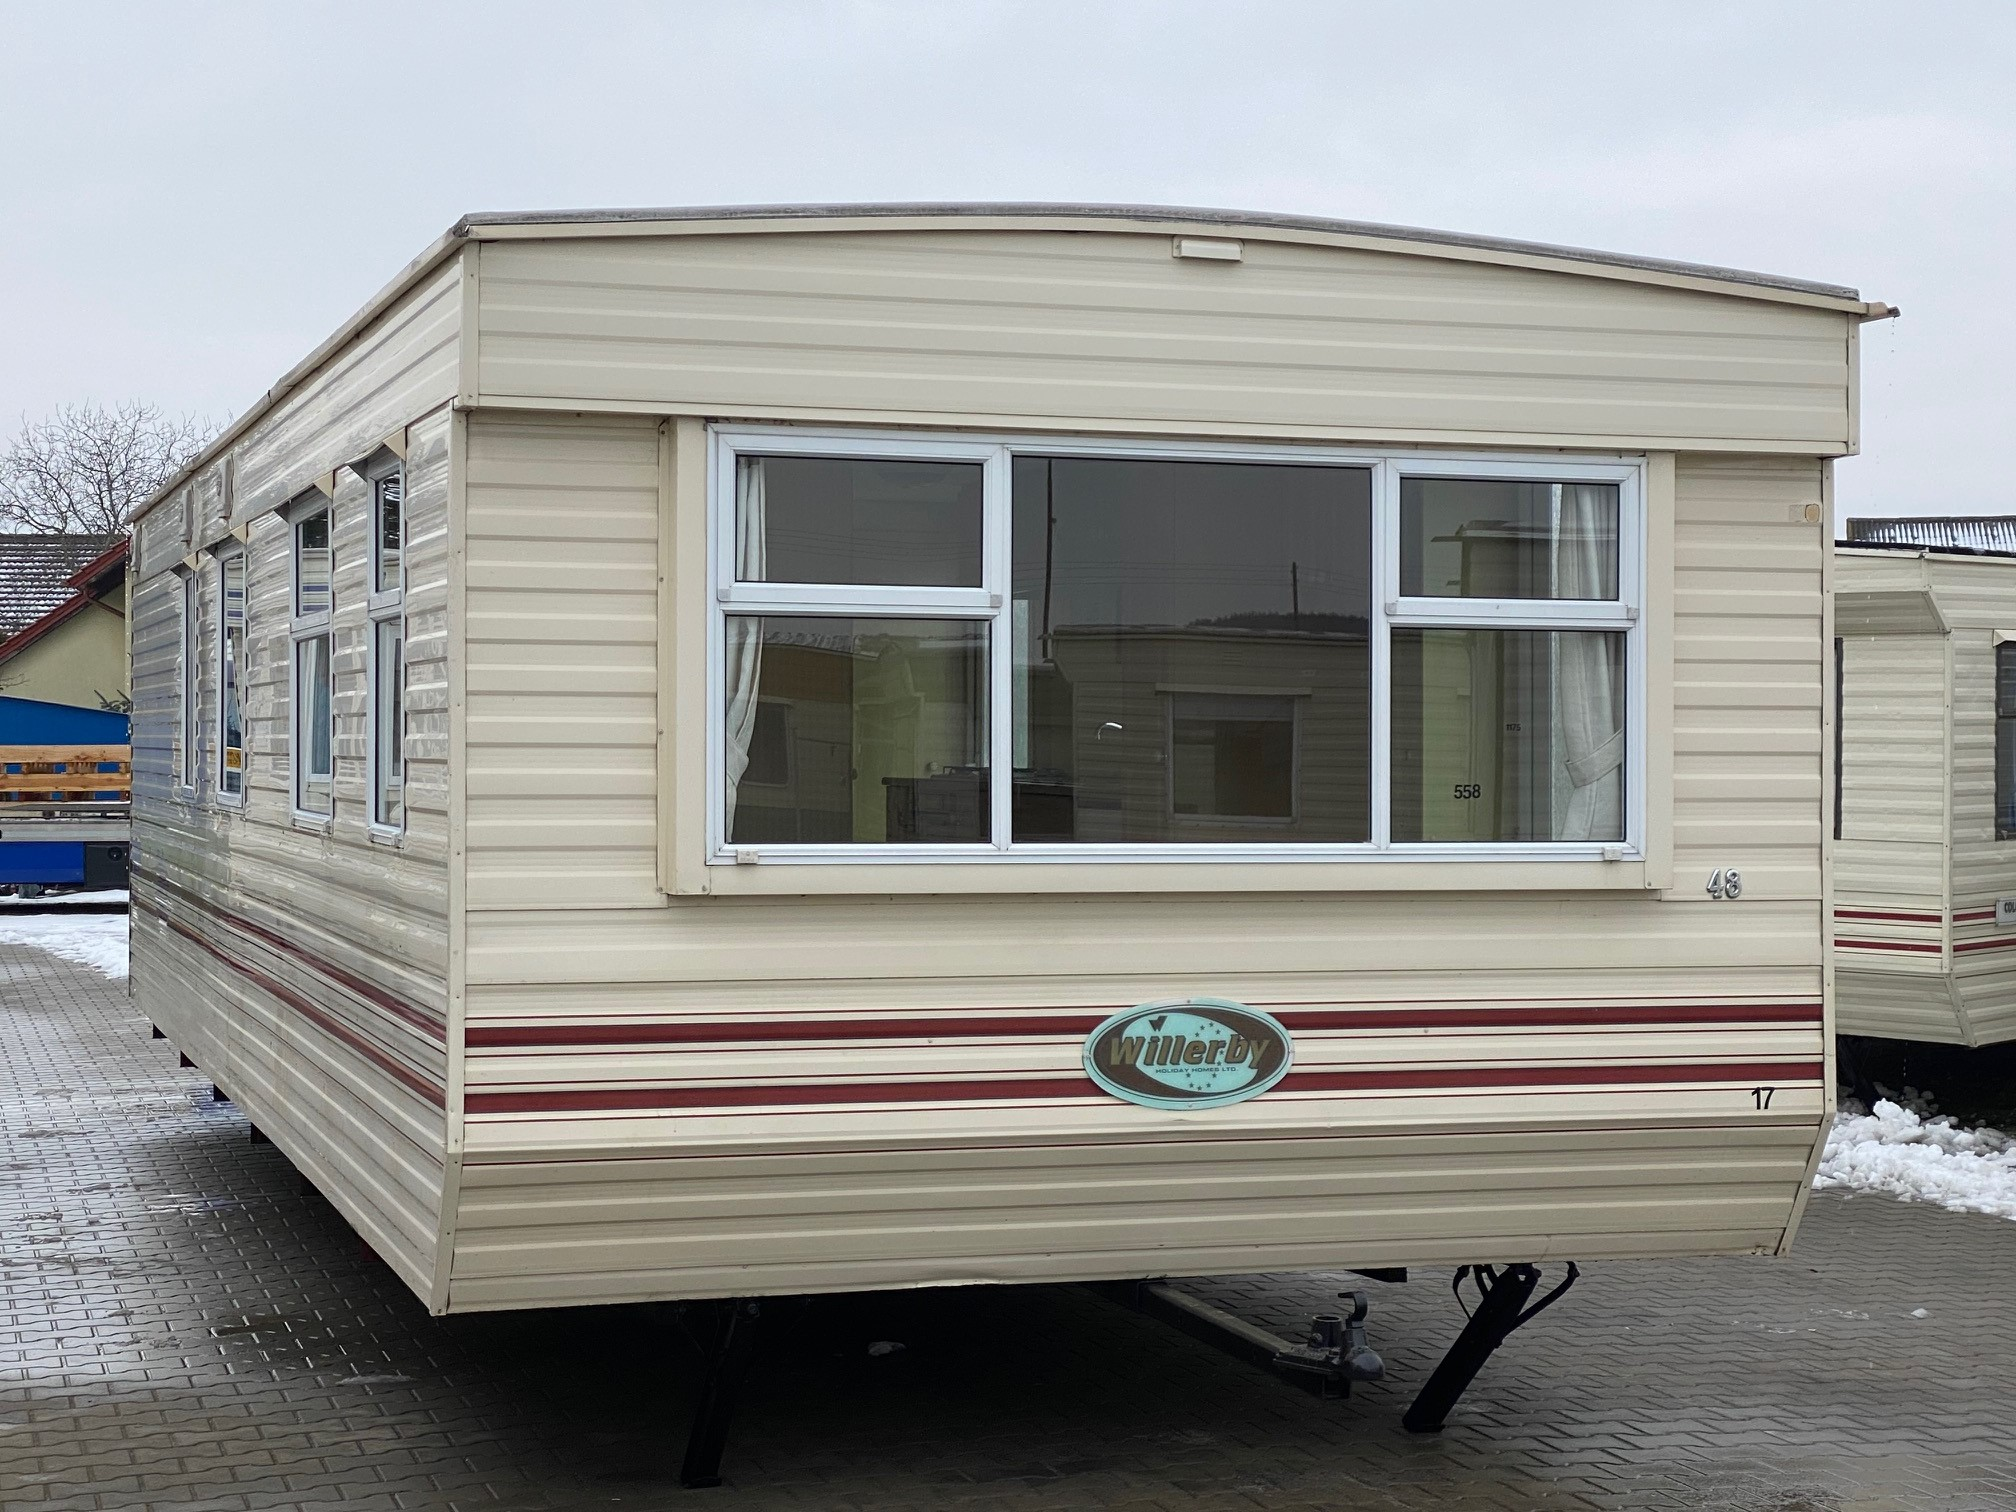 WILLERBY CEARNARFOON 8,80 x 3,0 M